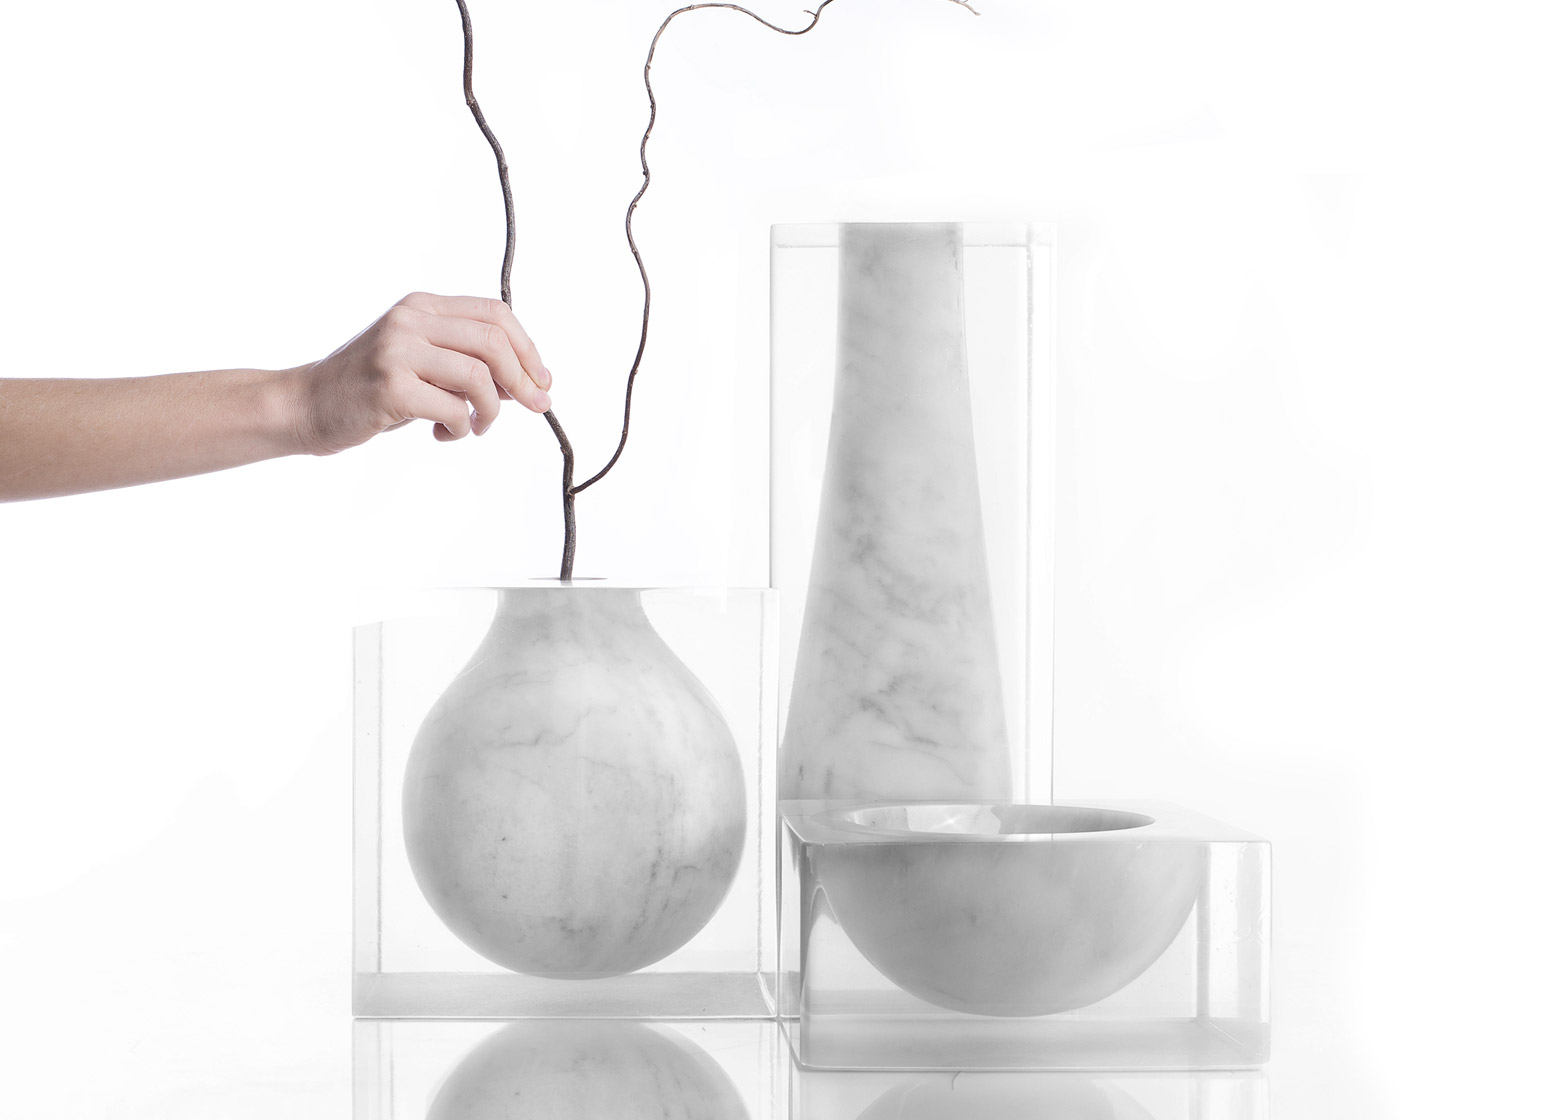 Suspended Collection 2016 by Moreno Ratti for Marmotrilogy